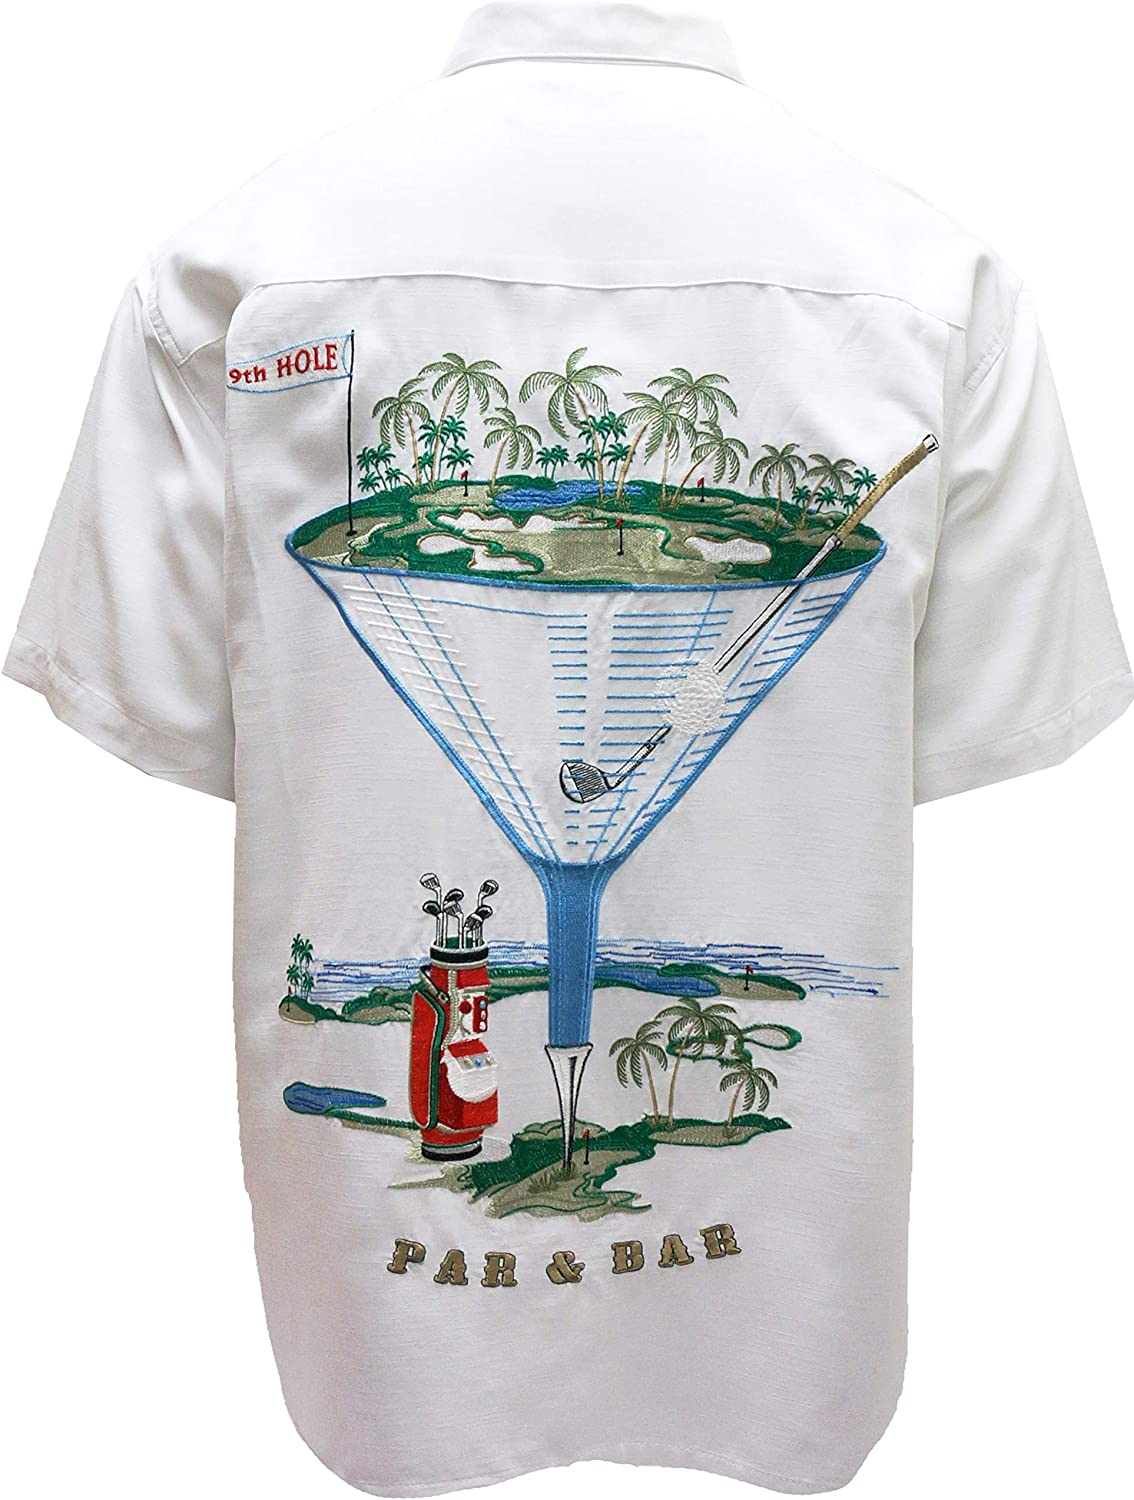 Bamboo Cay Men's Short Sleeve Par and Bar Casual Embroidered Woven Shirt